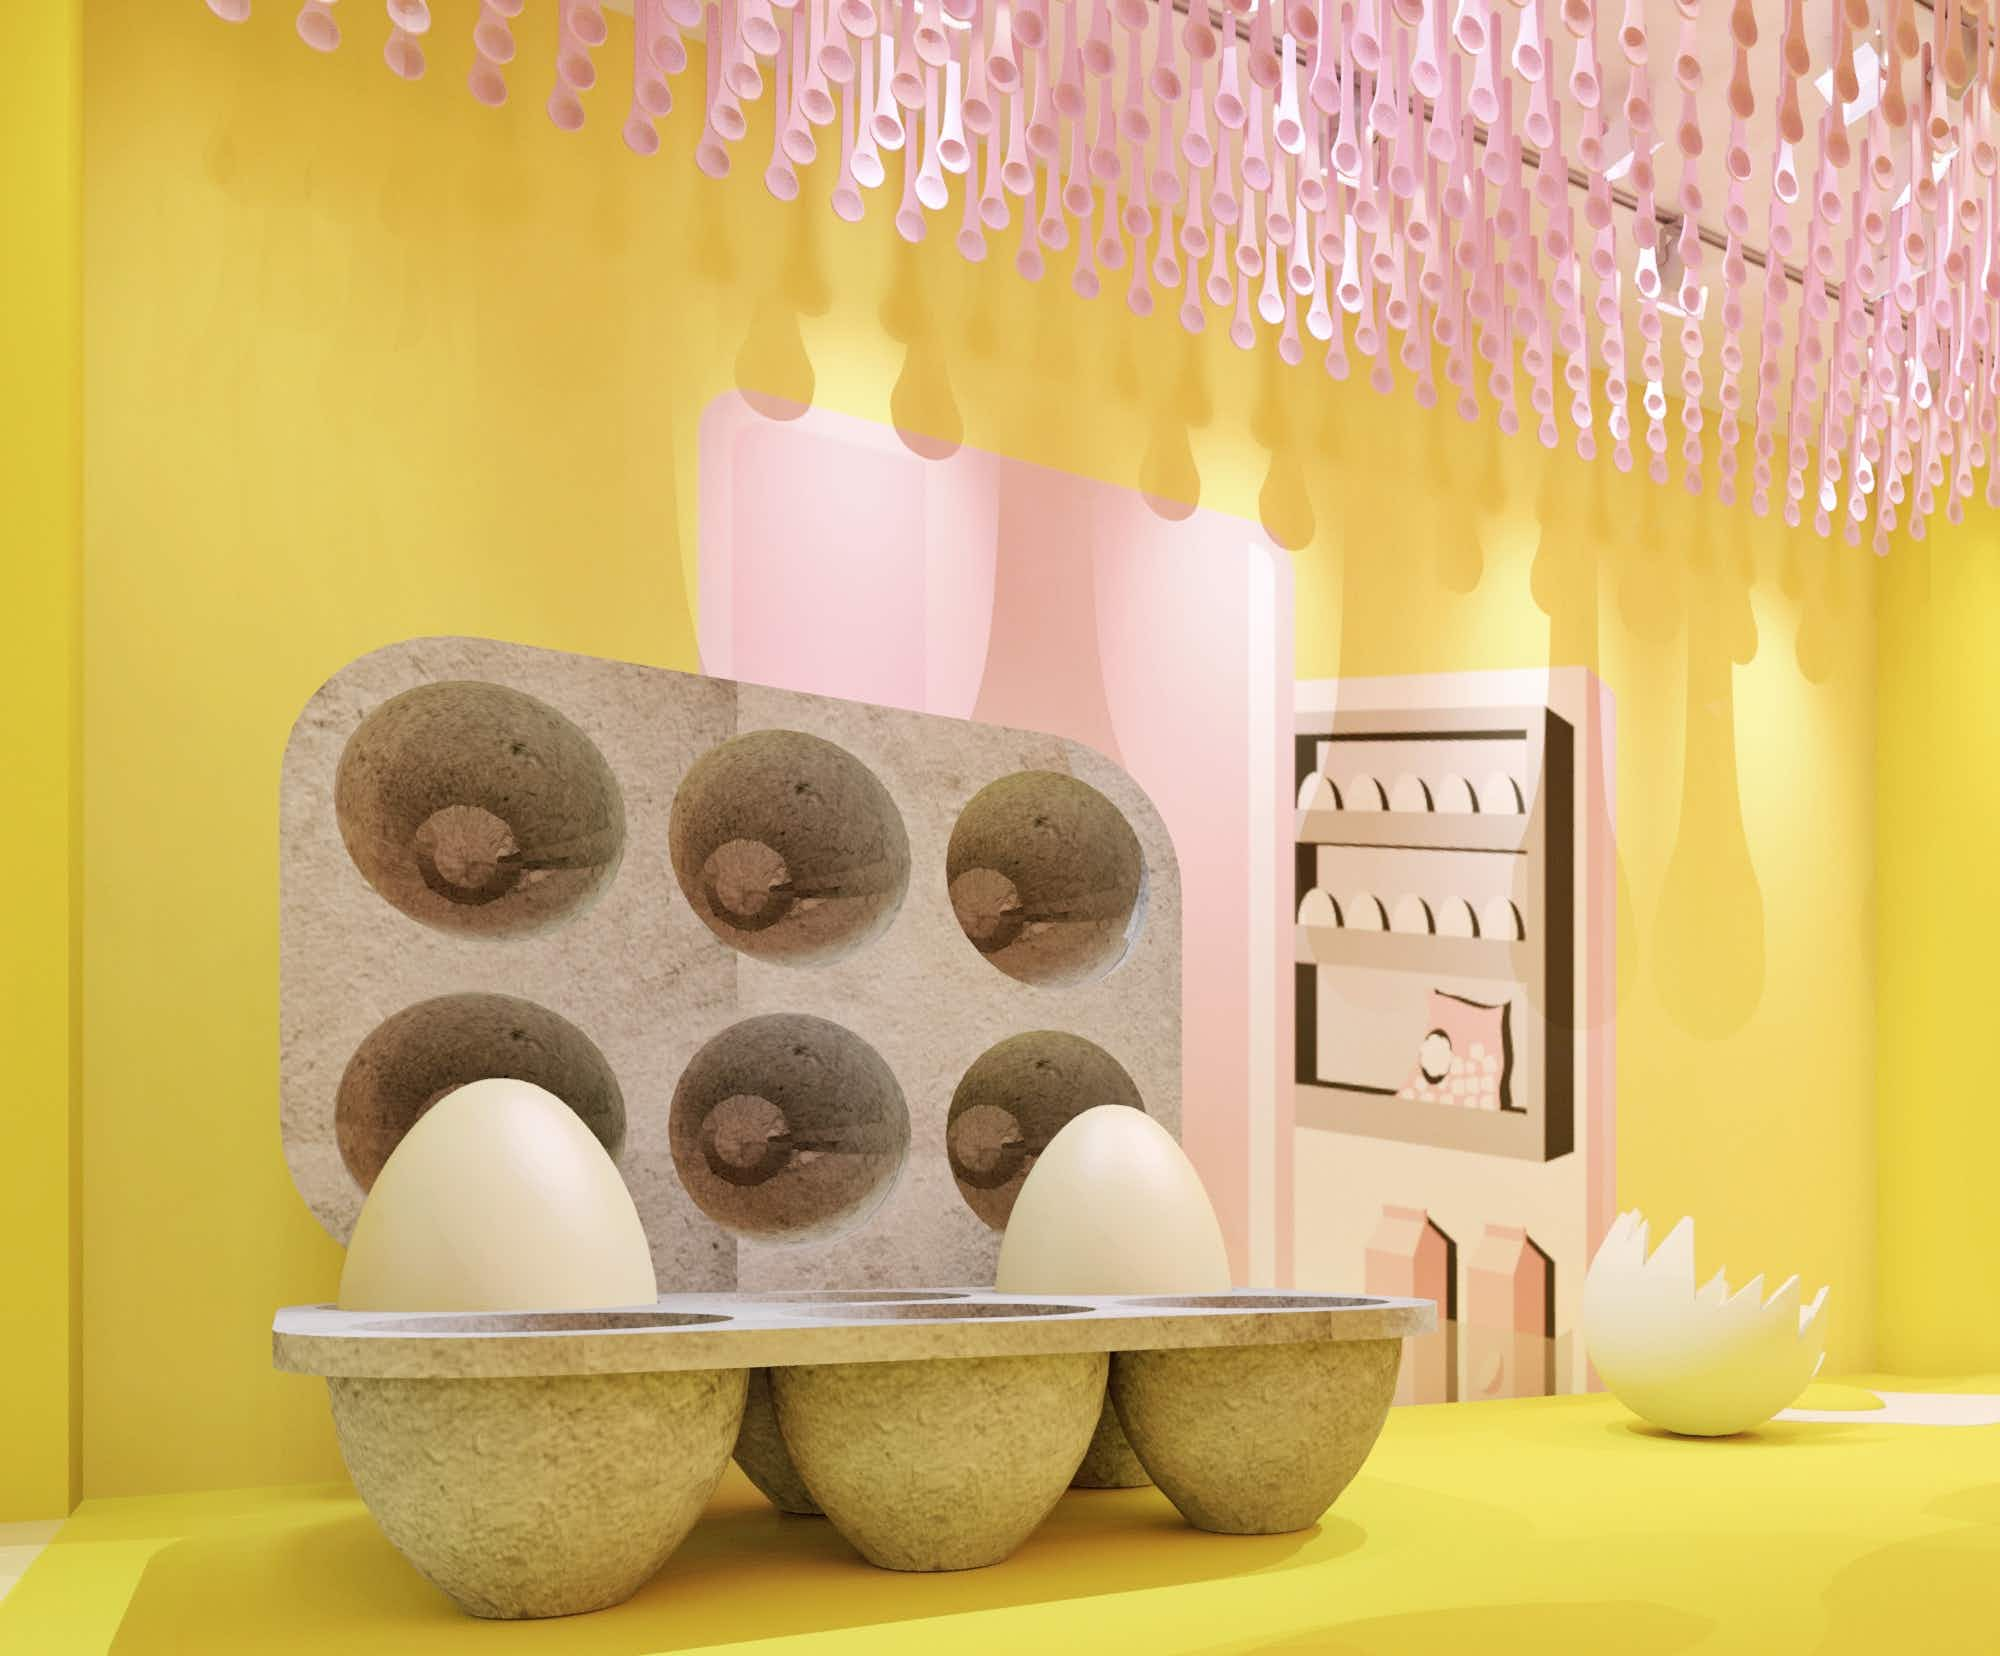 A quirky egg-themed pop-up is opening in New York